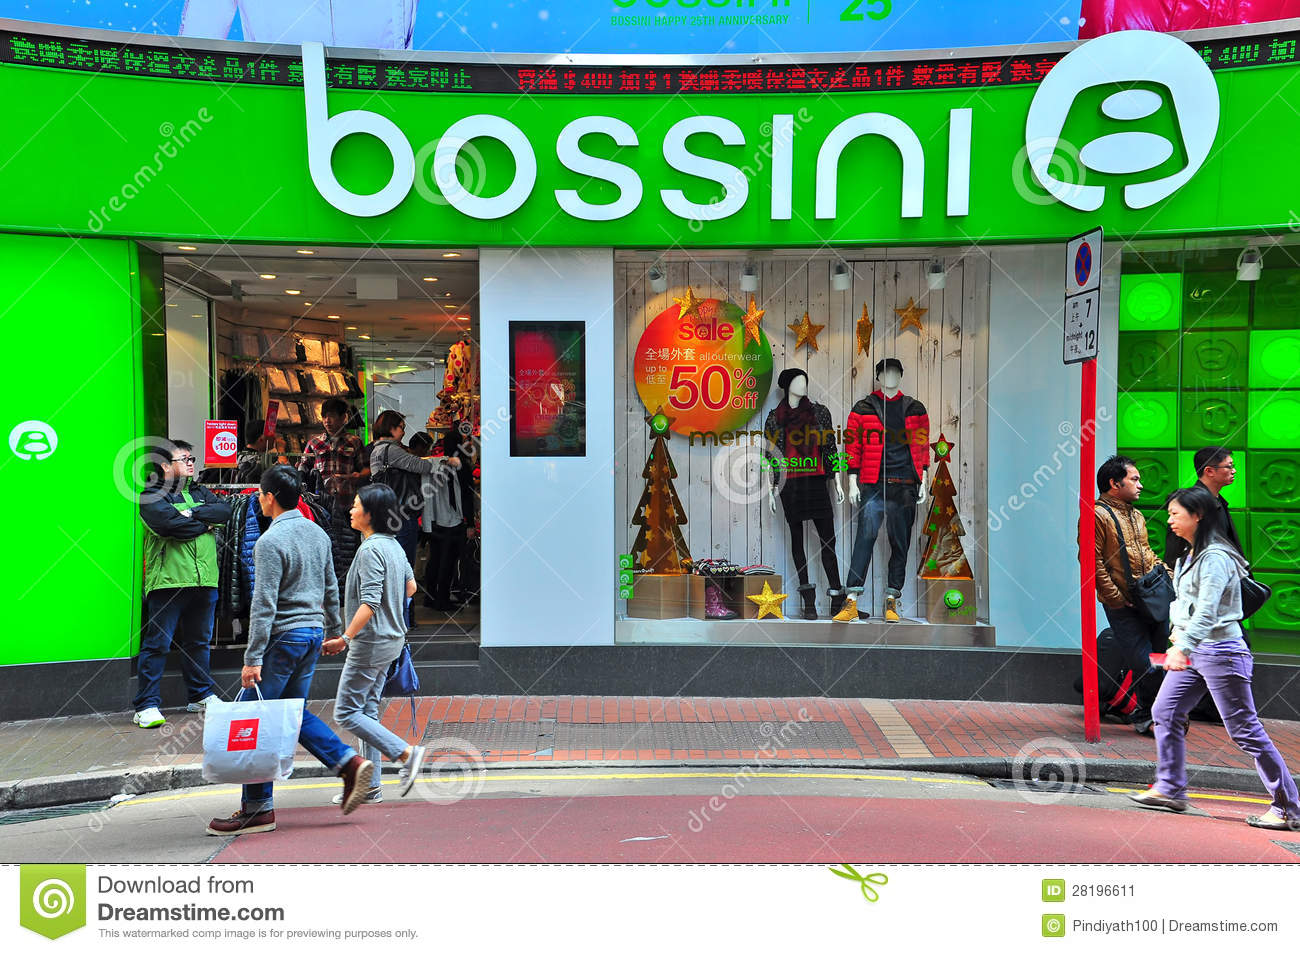 [Transaction Tracking]Bossini is a widely recognized casual wear brand headquartered in Hong Kong. We offer a full range of apparel products, including ladies', men's, kids' for all seasons.